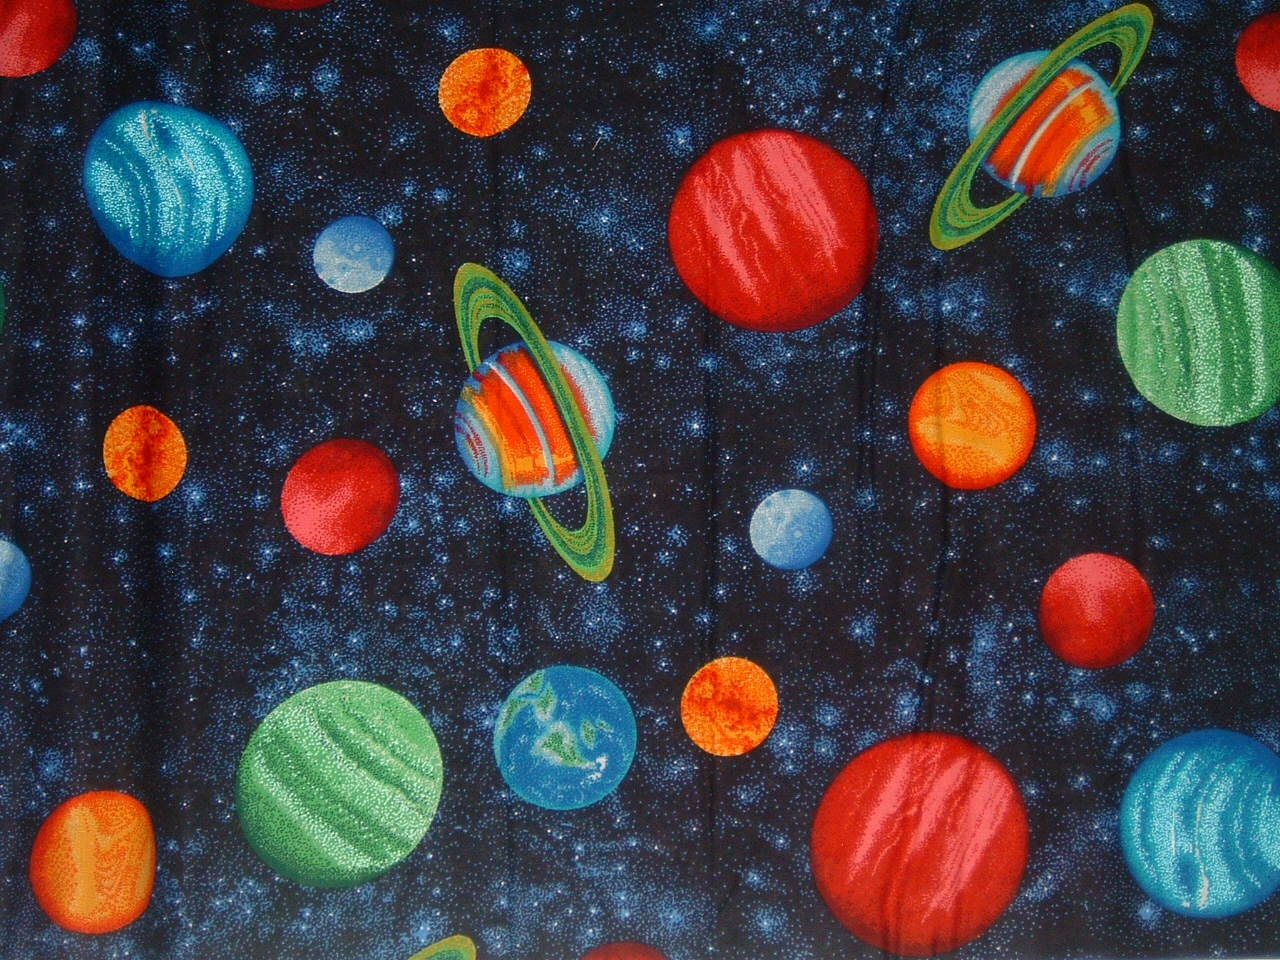 planet solar system planets earth cotton fabric by the yard by